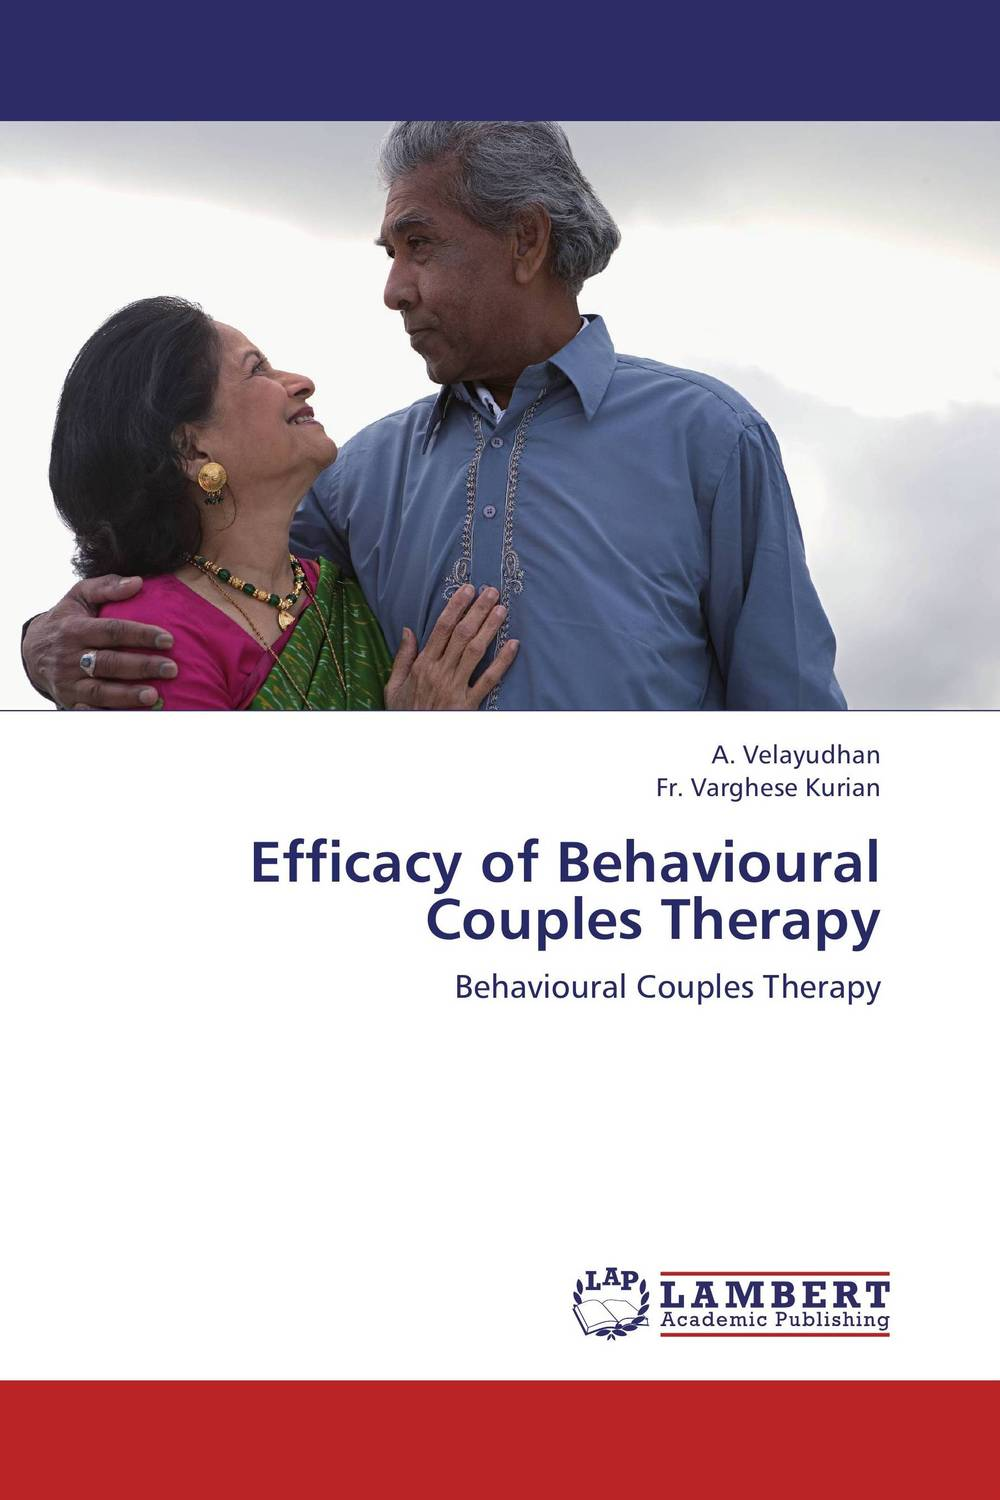 Efficacy of Behavioural Couples Therapy the crowded bed – an effective framework for doing couple therapy